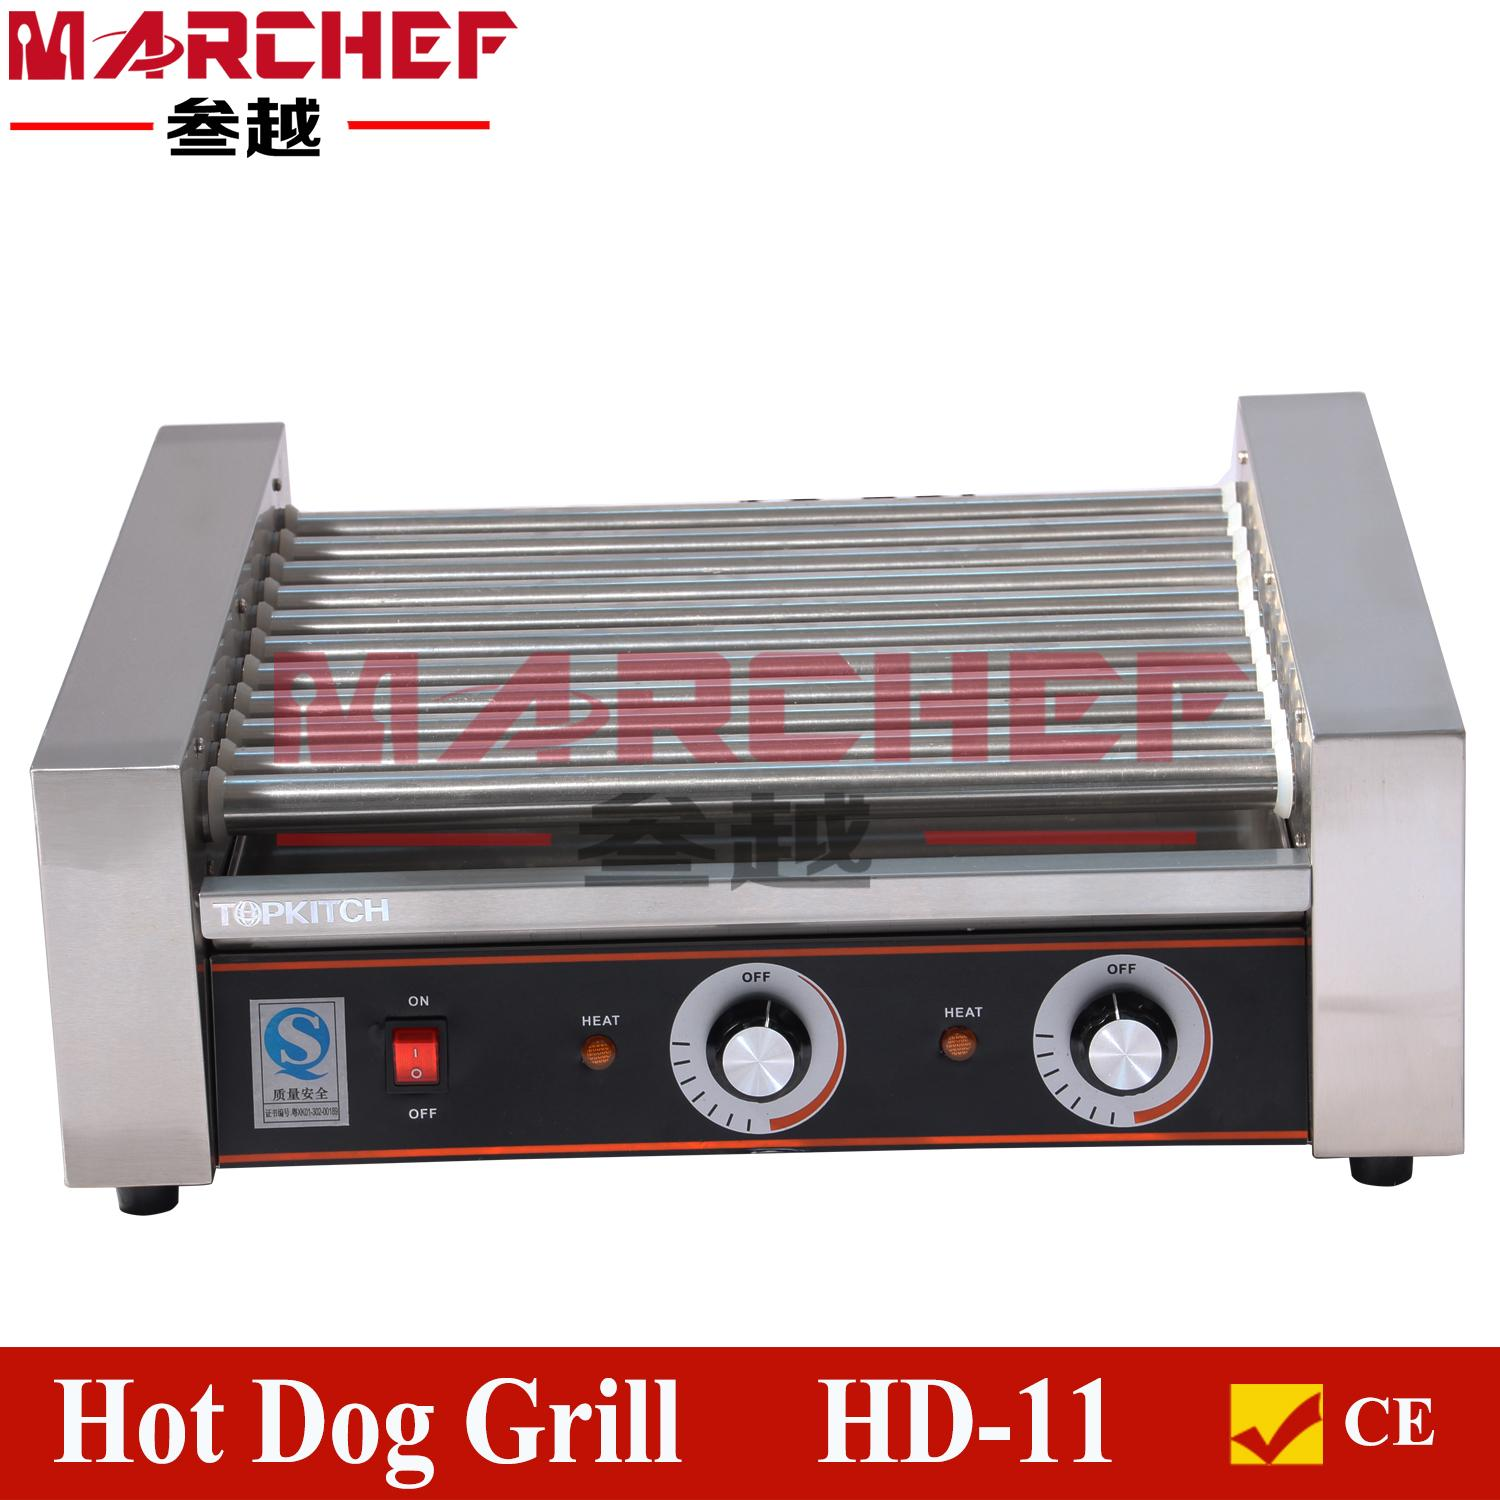 11Rollers hot dog grill